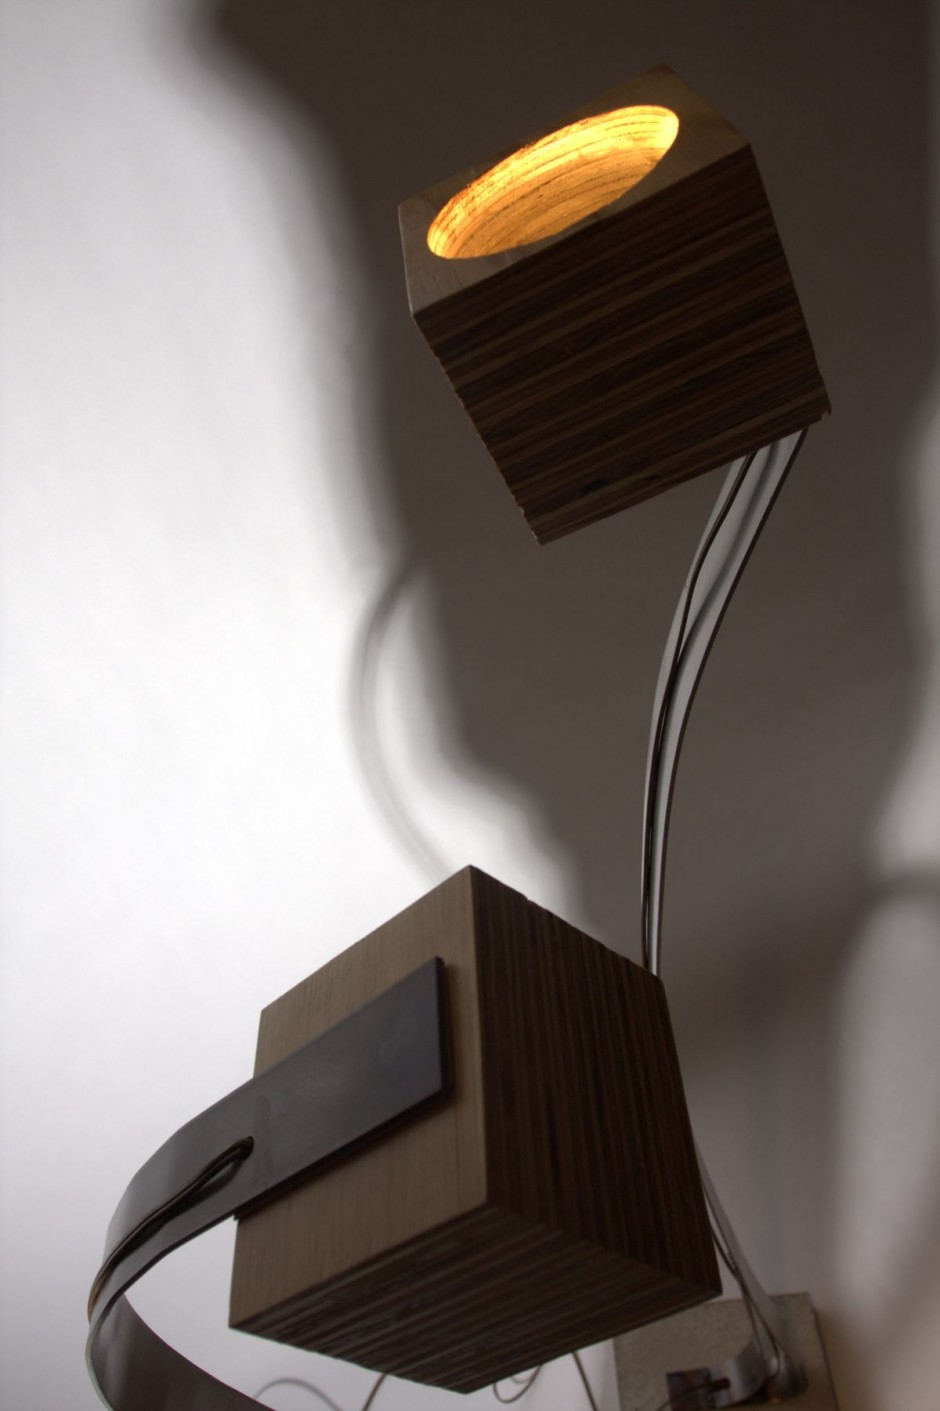 Stalb Lamps by Eric Fescenmeyer for Kassen Lifestyle